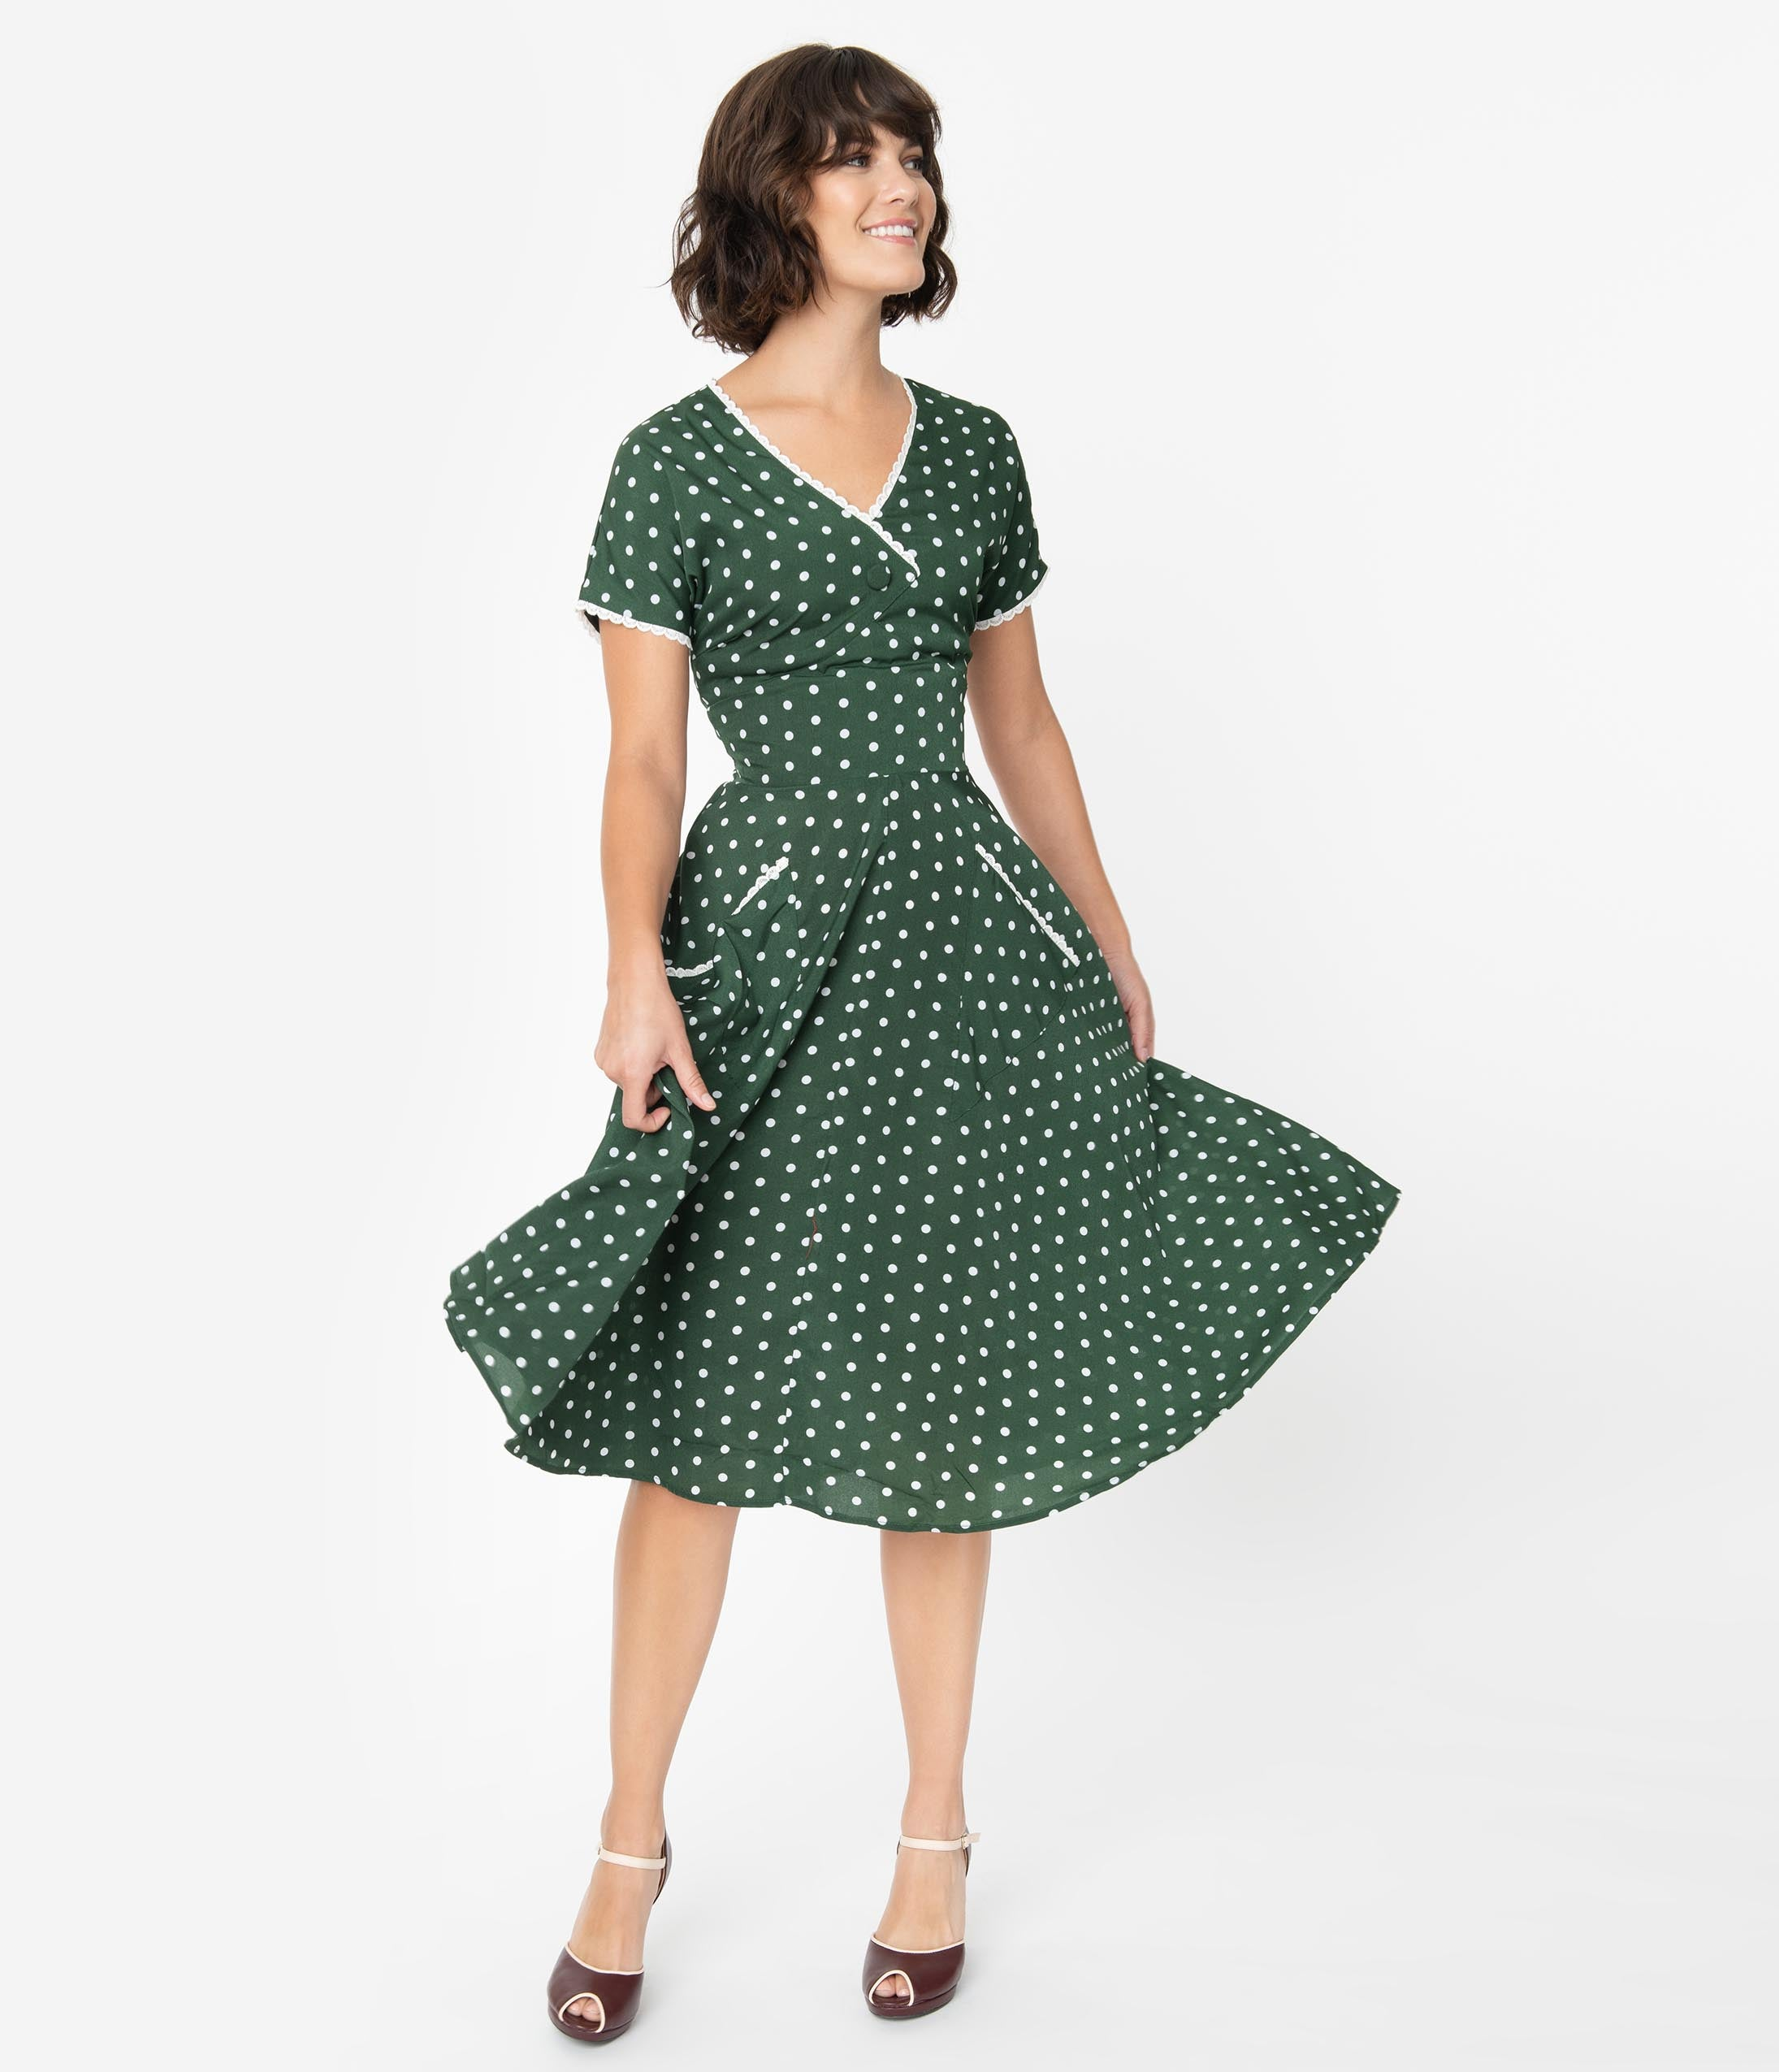 1940s Fashion Advice for Tall Women Unique Vintage 1950S Dark Green  White Polka Dot Goldie Swing Dress $78.00 AT vintagedancer.com